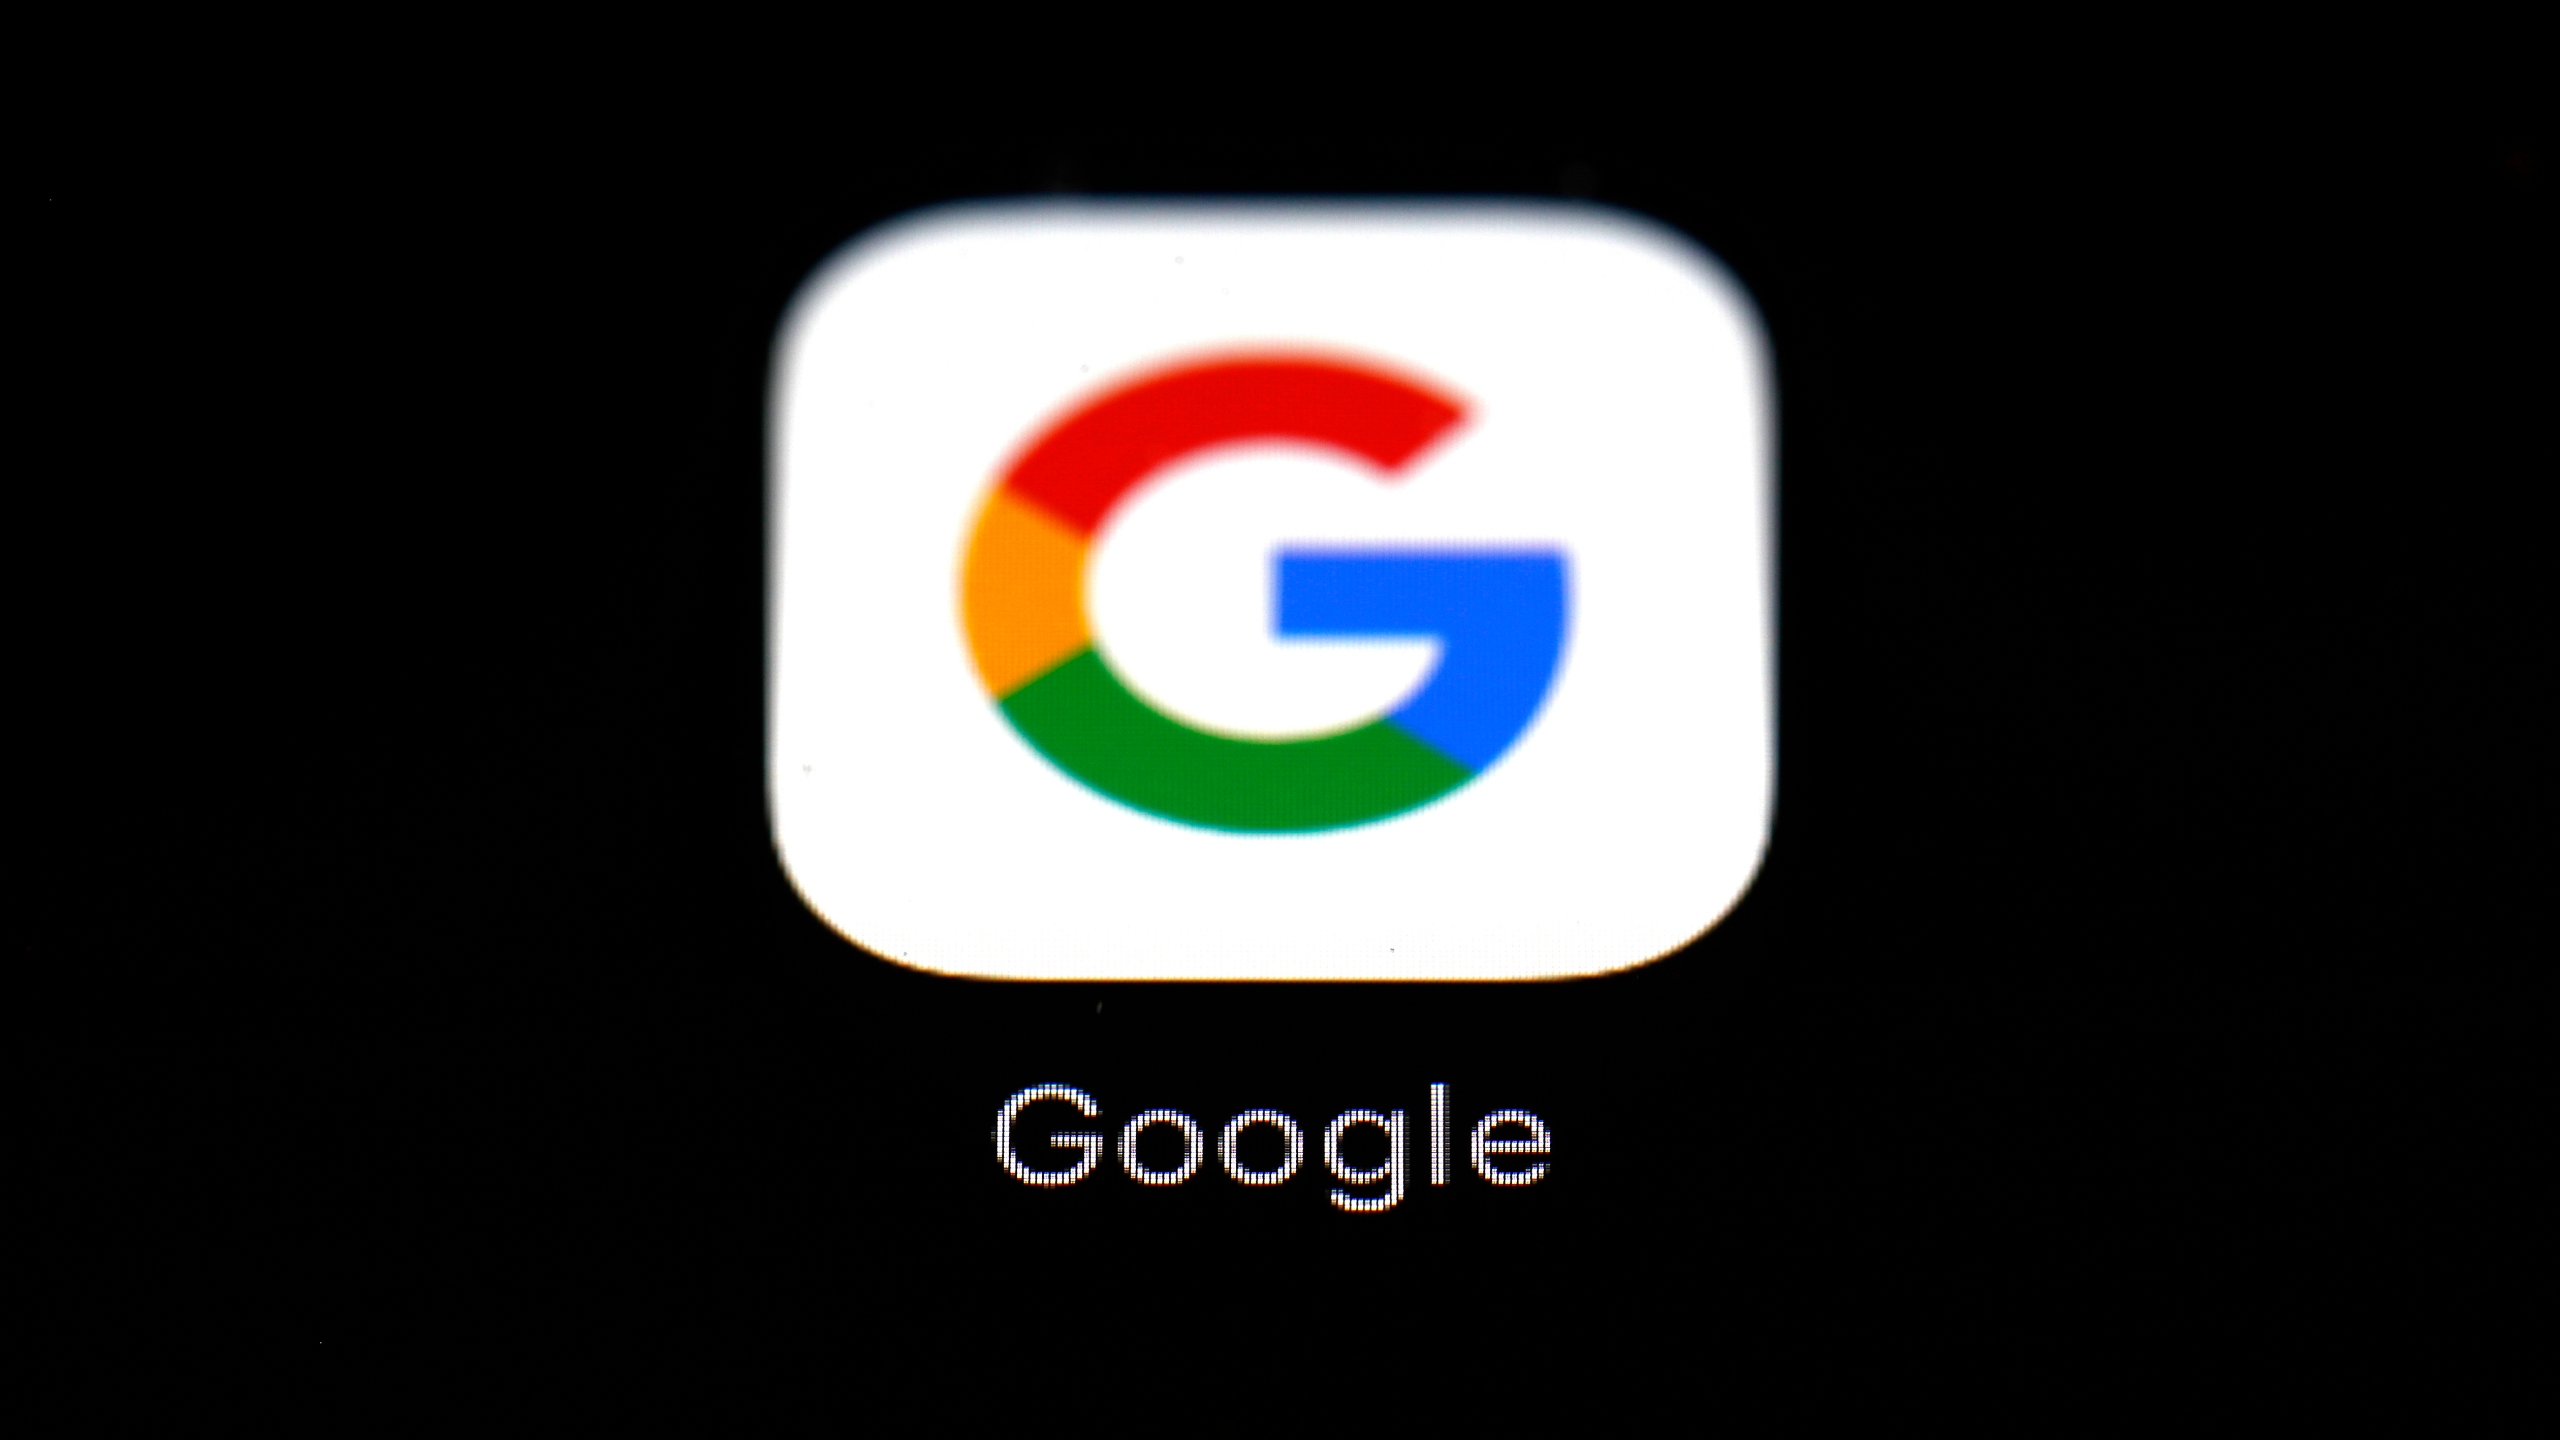 This March 19, 2018 file photo shows the Google app on an iPad in Baltimore. Dozens of states are taking aim at Google in an escalating legal offensive on Big Tech. This time it's a lawsuit targeting the Google's Play store, where consumers download most of the apps designed for the Android software that powers most of the world's smartphones. The complaint filed late Wednesday, July 7, 2021 represents the fourth major antitrust filed against Google by government agencies across the U.S. since last October. (AP Photo/Patrick Semansky, File)